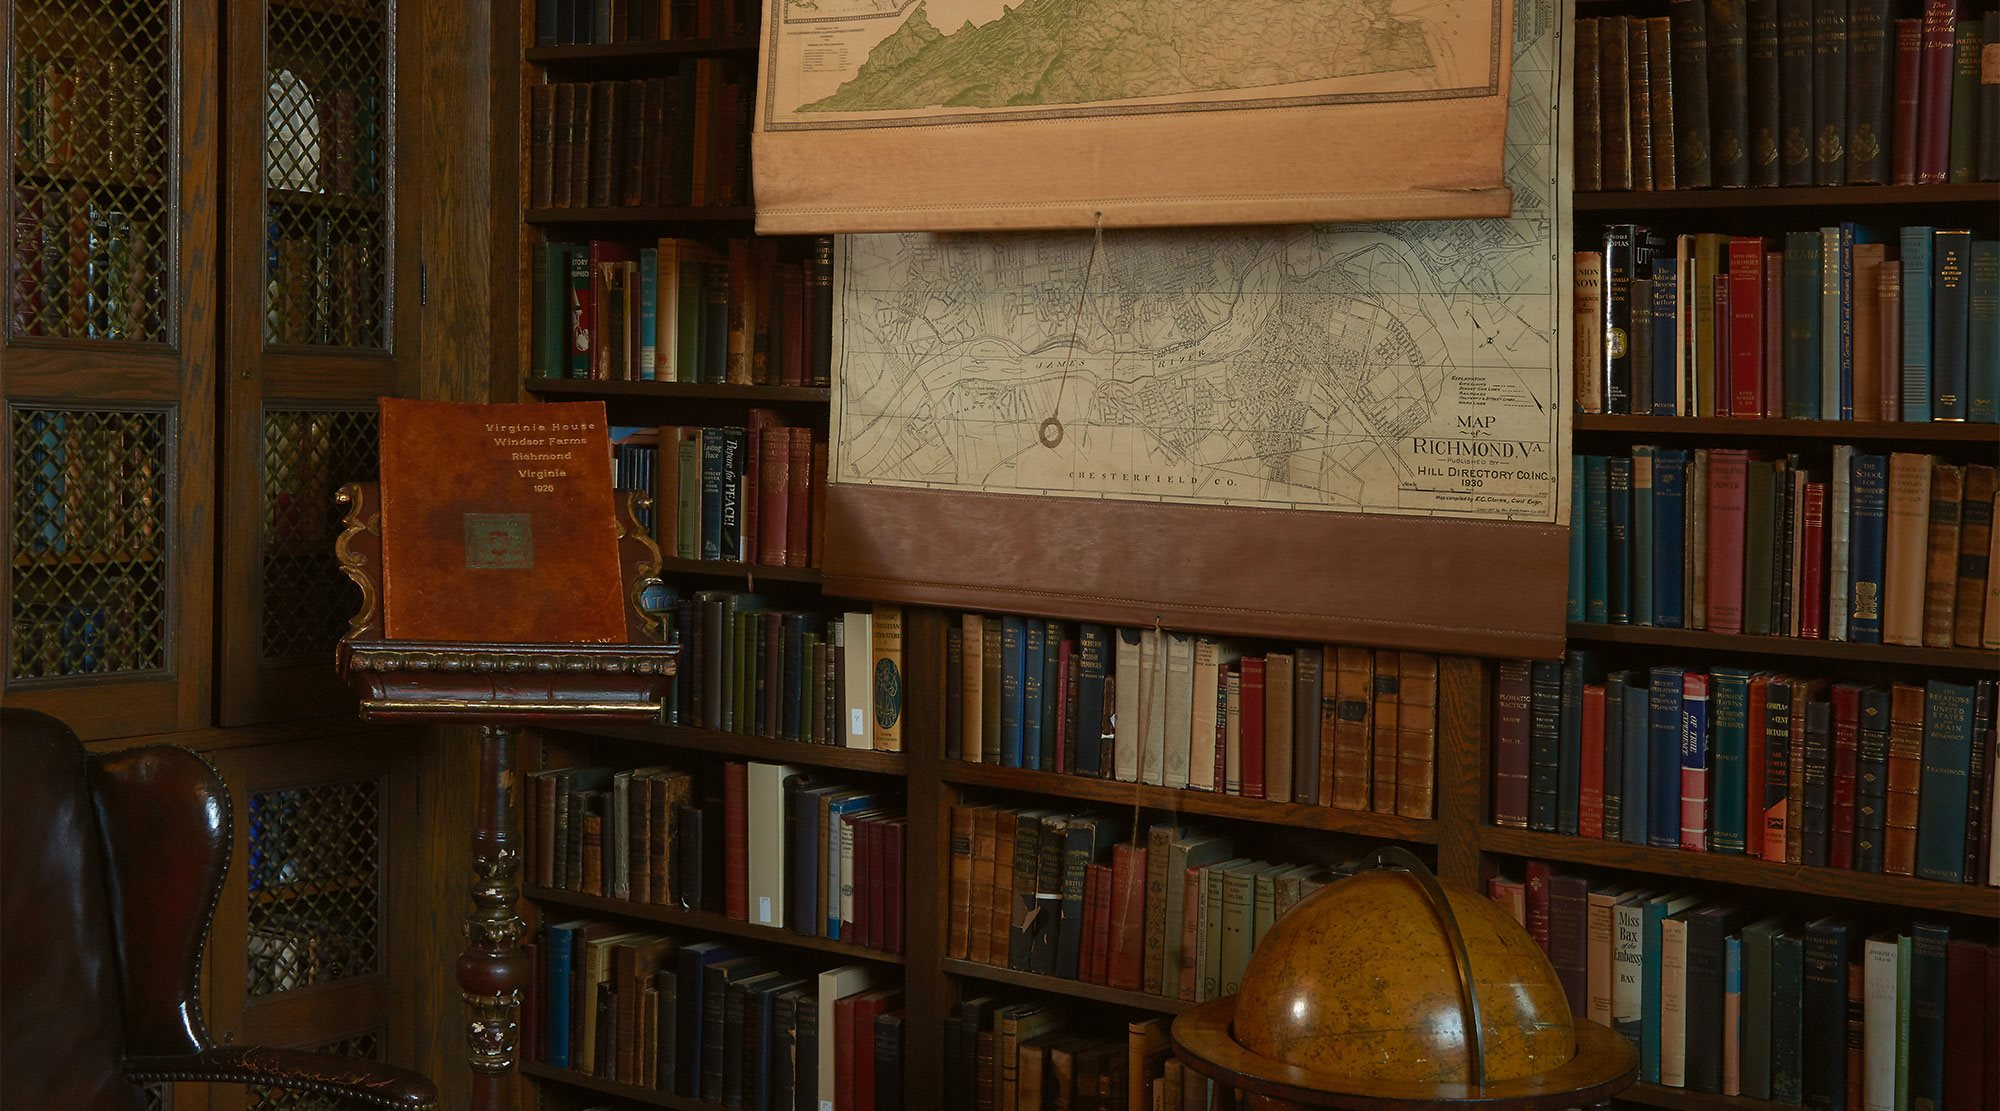 The library at The Virginia House Museum